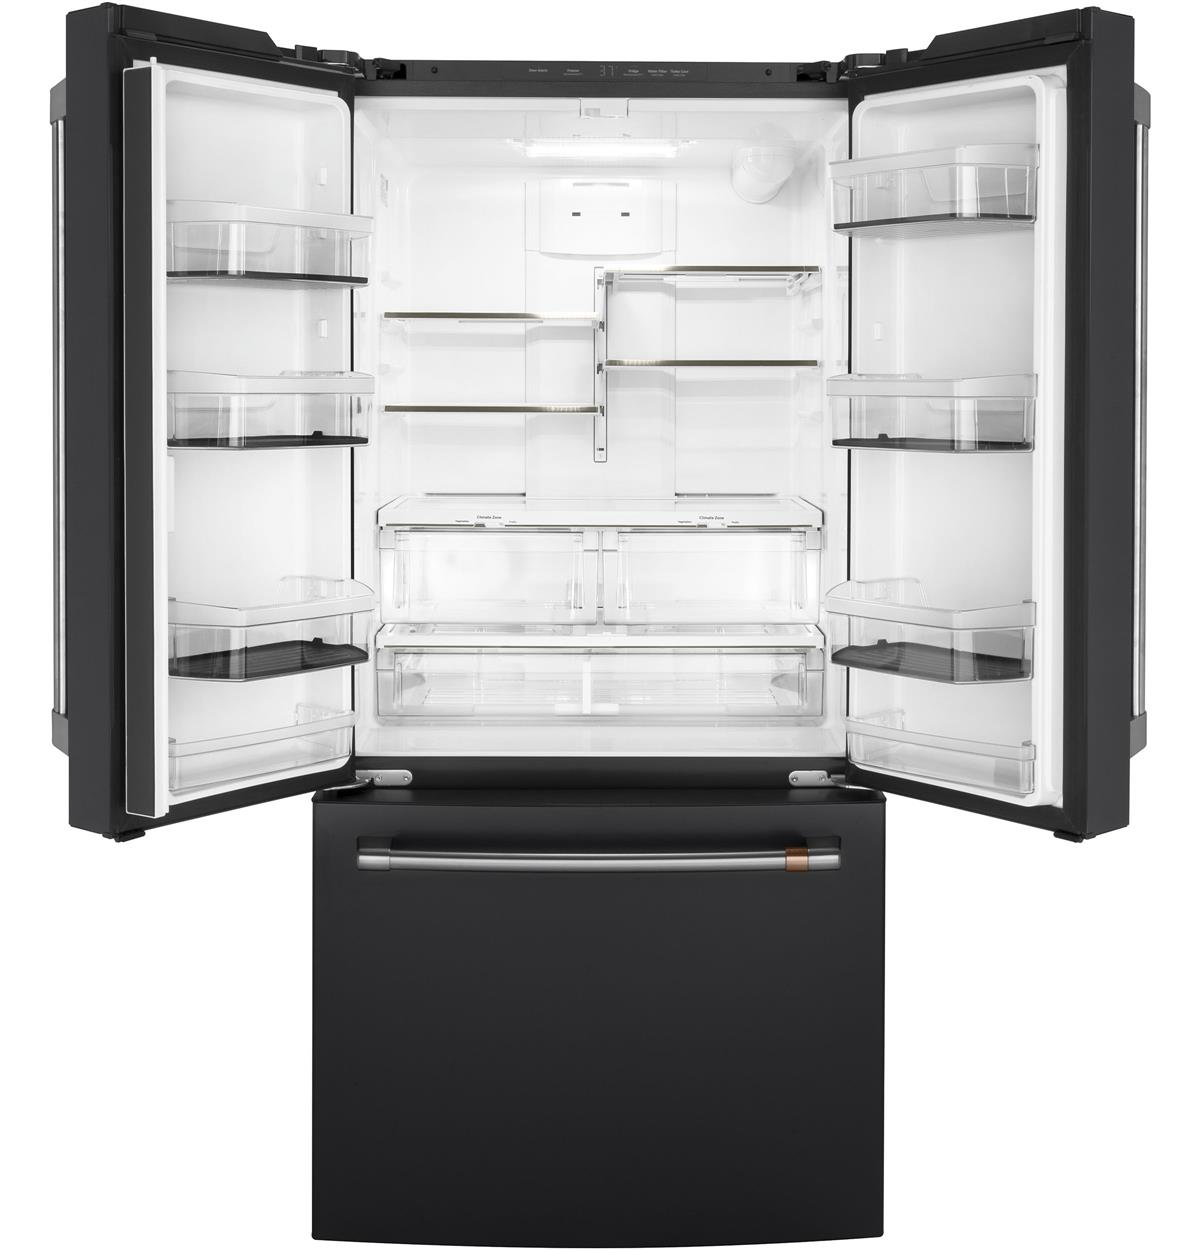 Café™ ENERGY STAR® 18.6 Cu. Ft